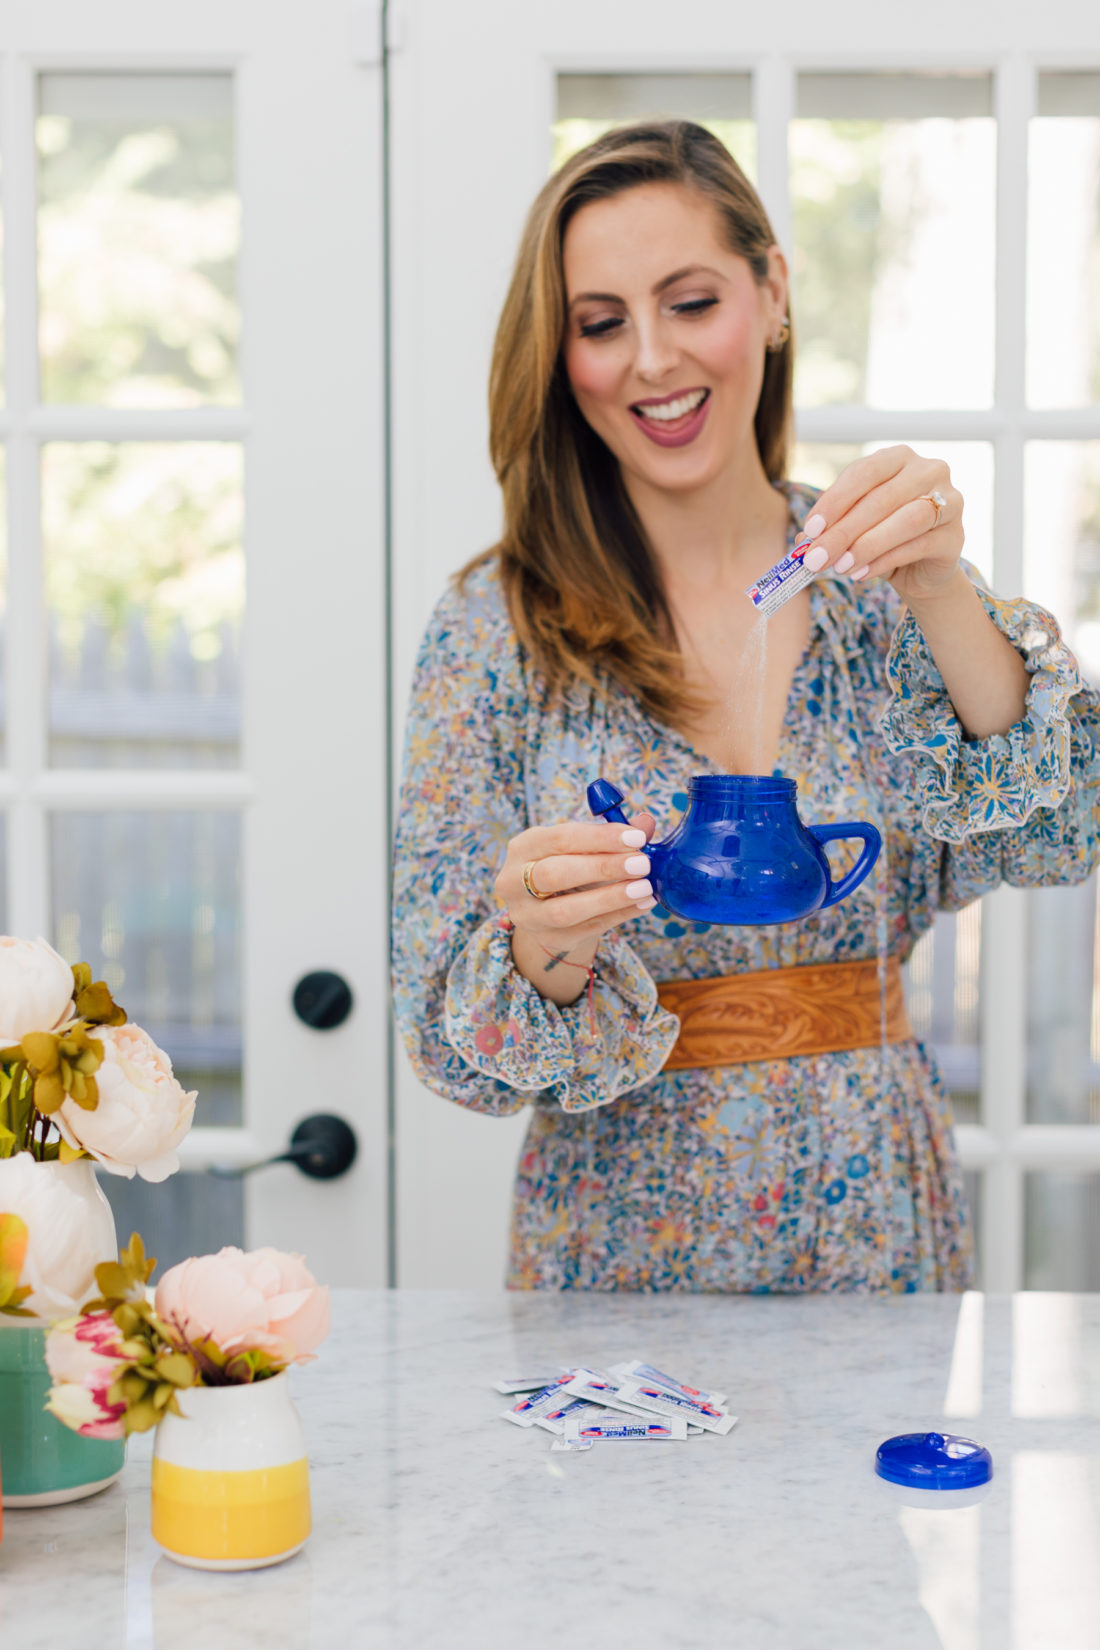 Eva Amurri Martino holds the Neil Med Sinus Rinse as part of her Eva's Obsessions October 2019